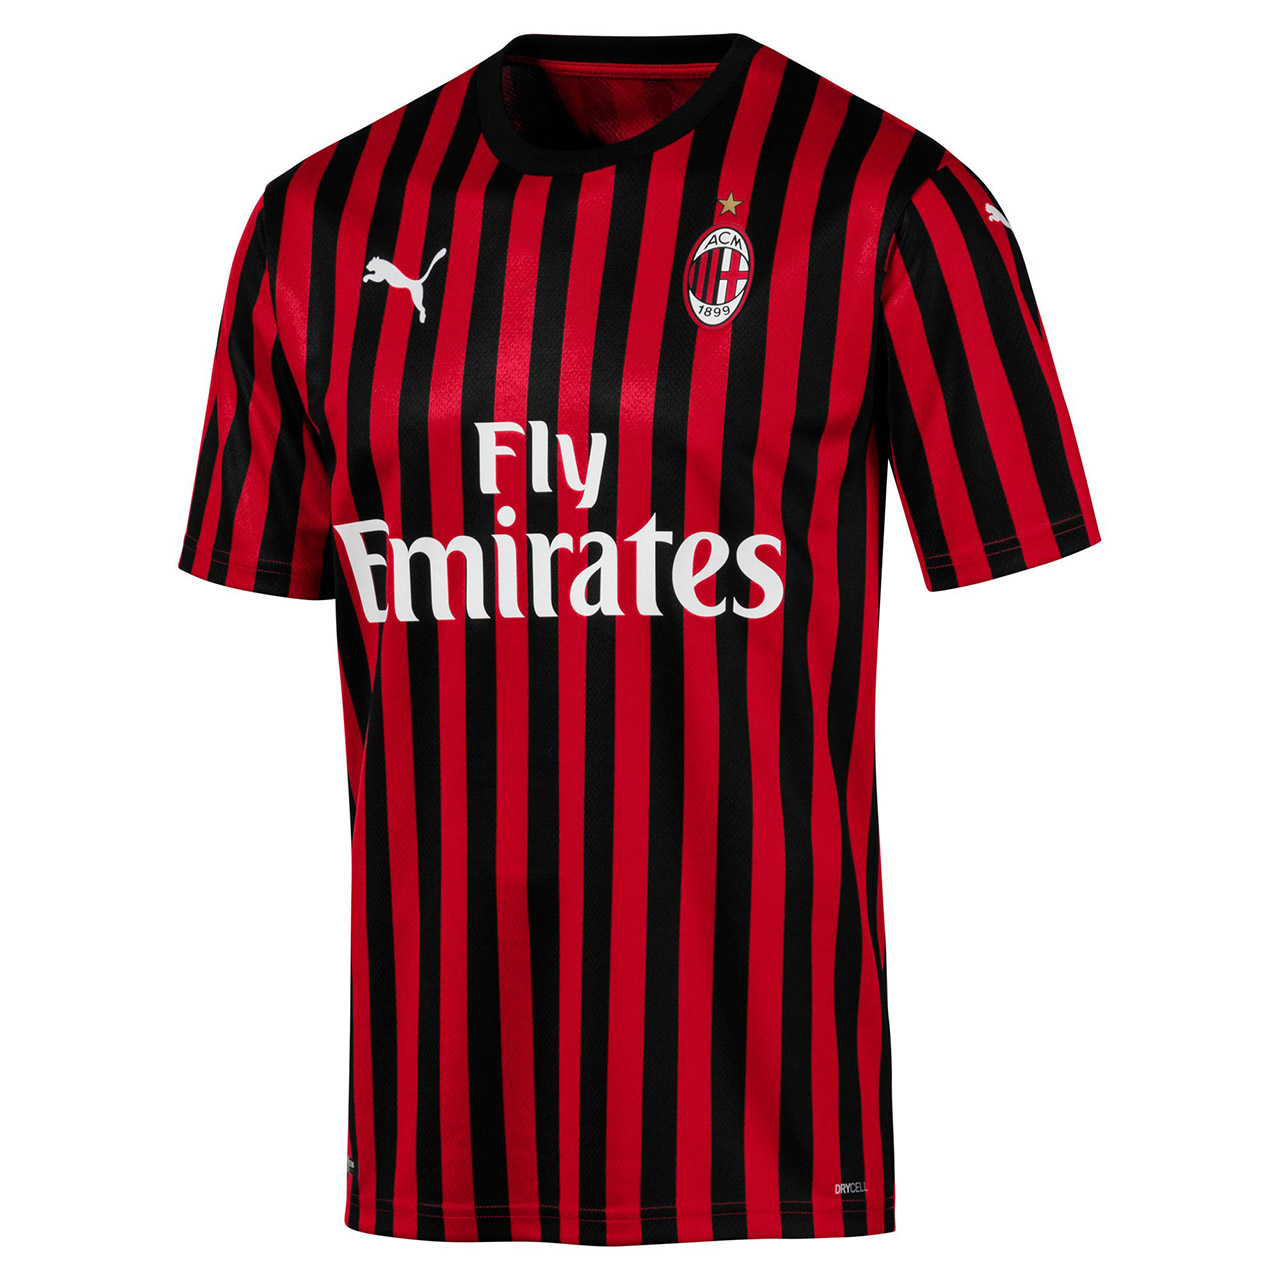 Calendario Serie A 1920.Ac Milan 19 20 Home Away Third Kits Released Footy